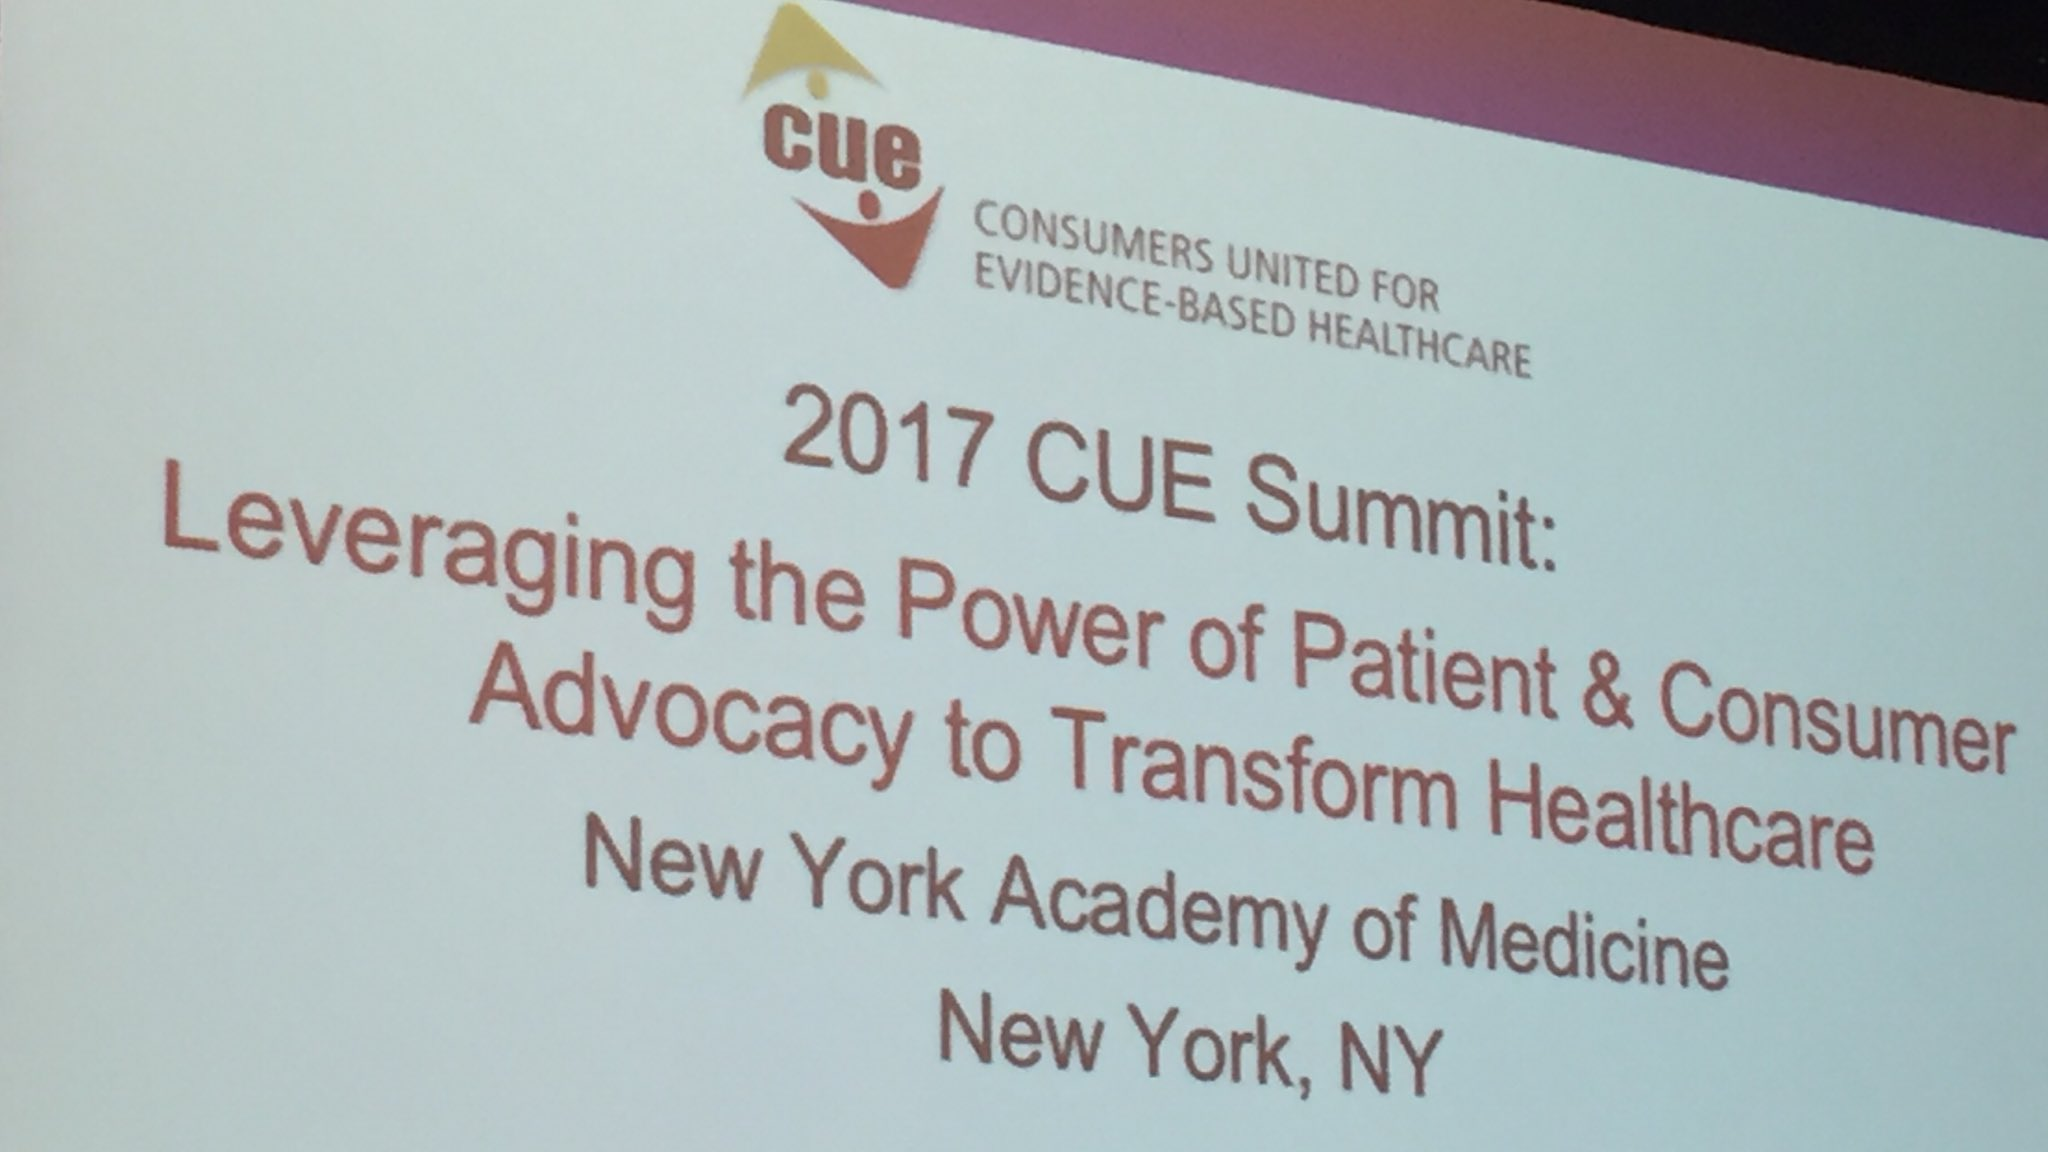 Getting up early on a Sunday morning is worth it to get to advocate for patients! #CUESummit17 https://t.co/Kv7WQahR2O